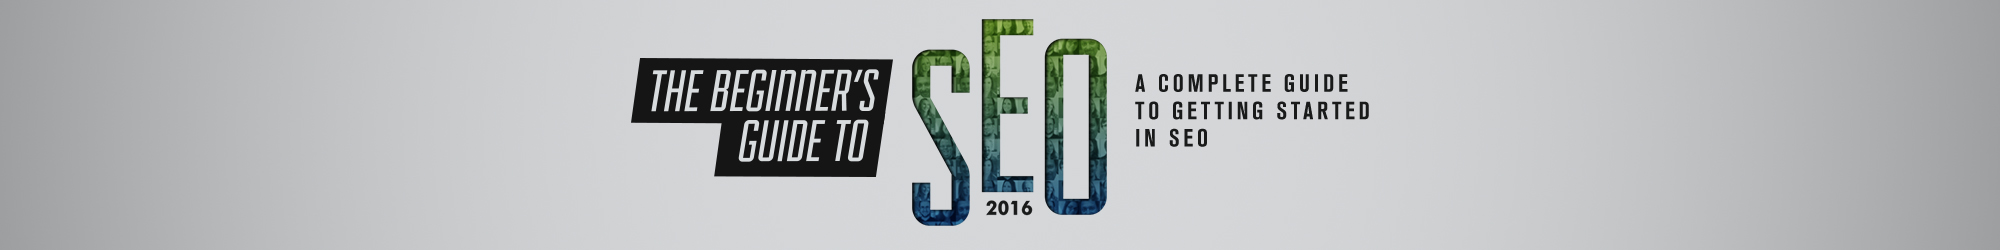 The Beginner's Guide to SEO 2016